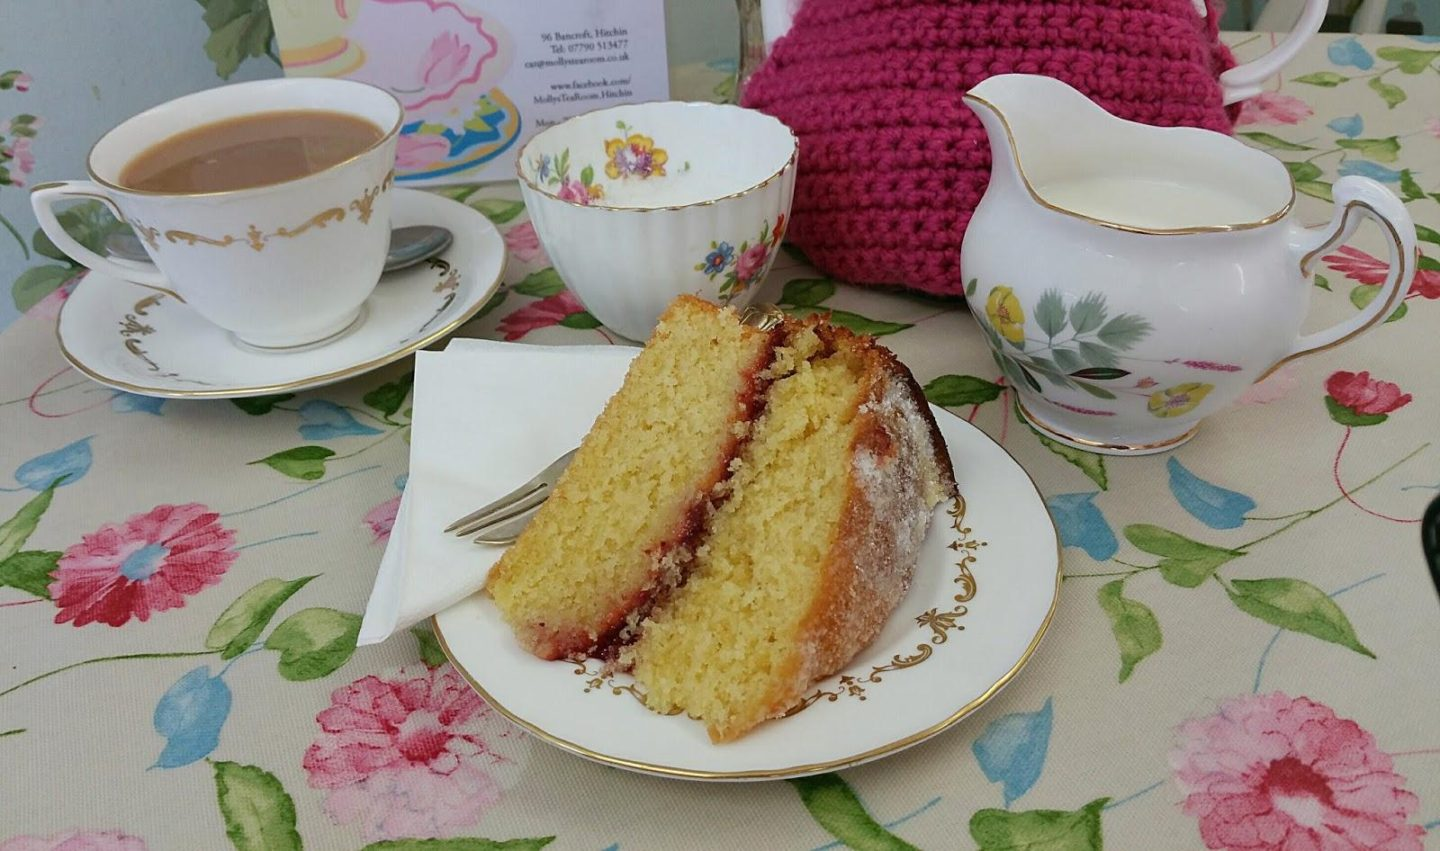 Tea and Cake at Molly's